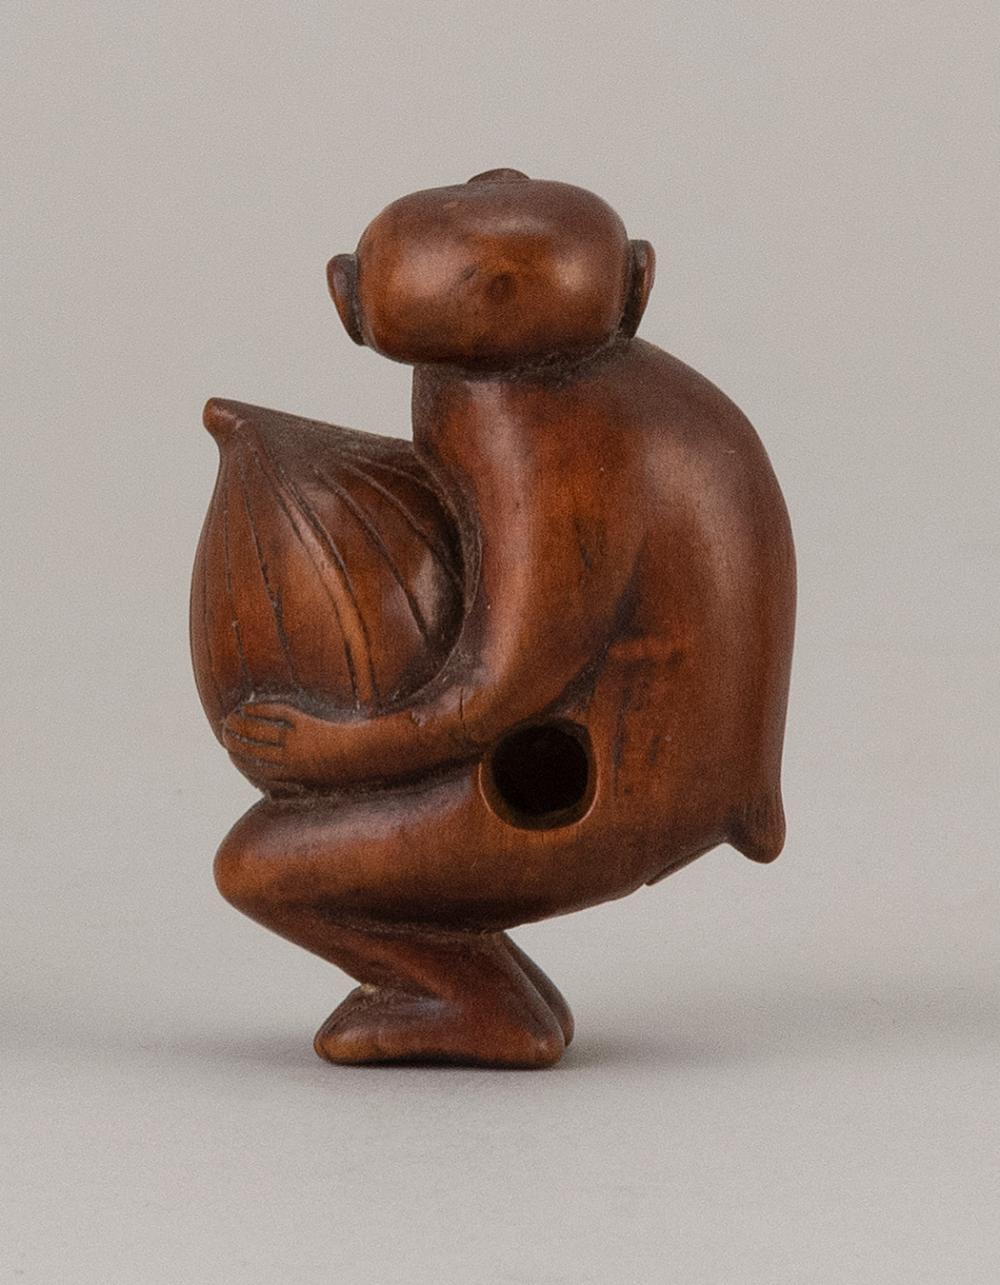 JAPANESE WOOD NETSUKE In the form of a monkey carrying a large chestnut. Height 2